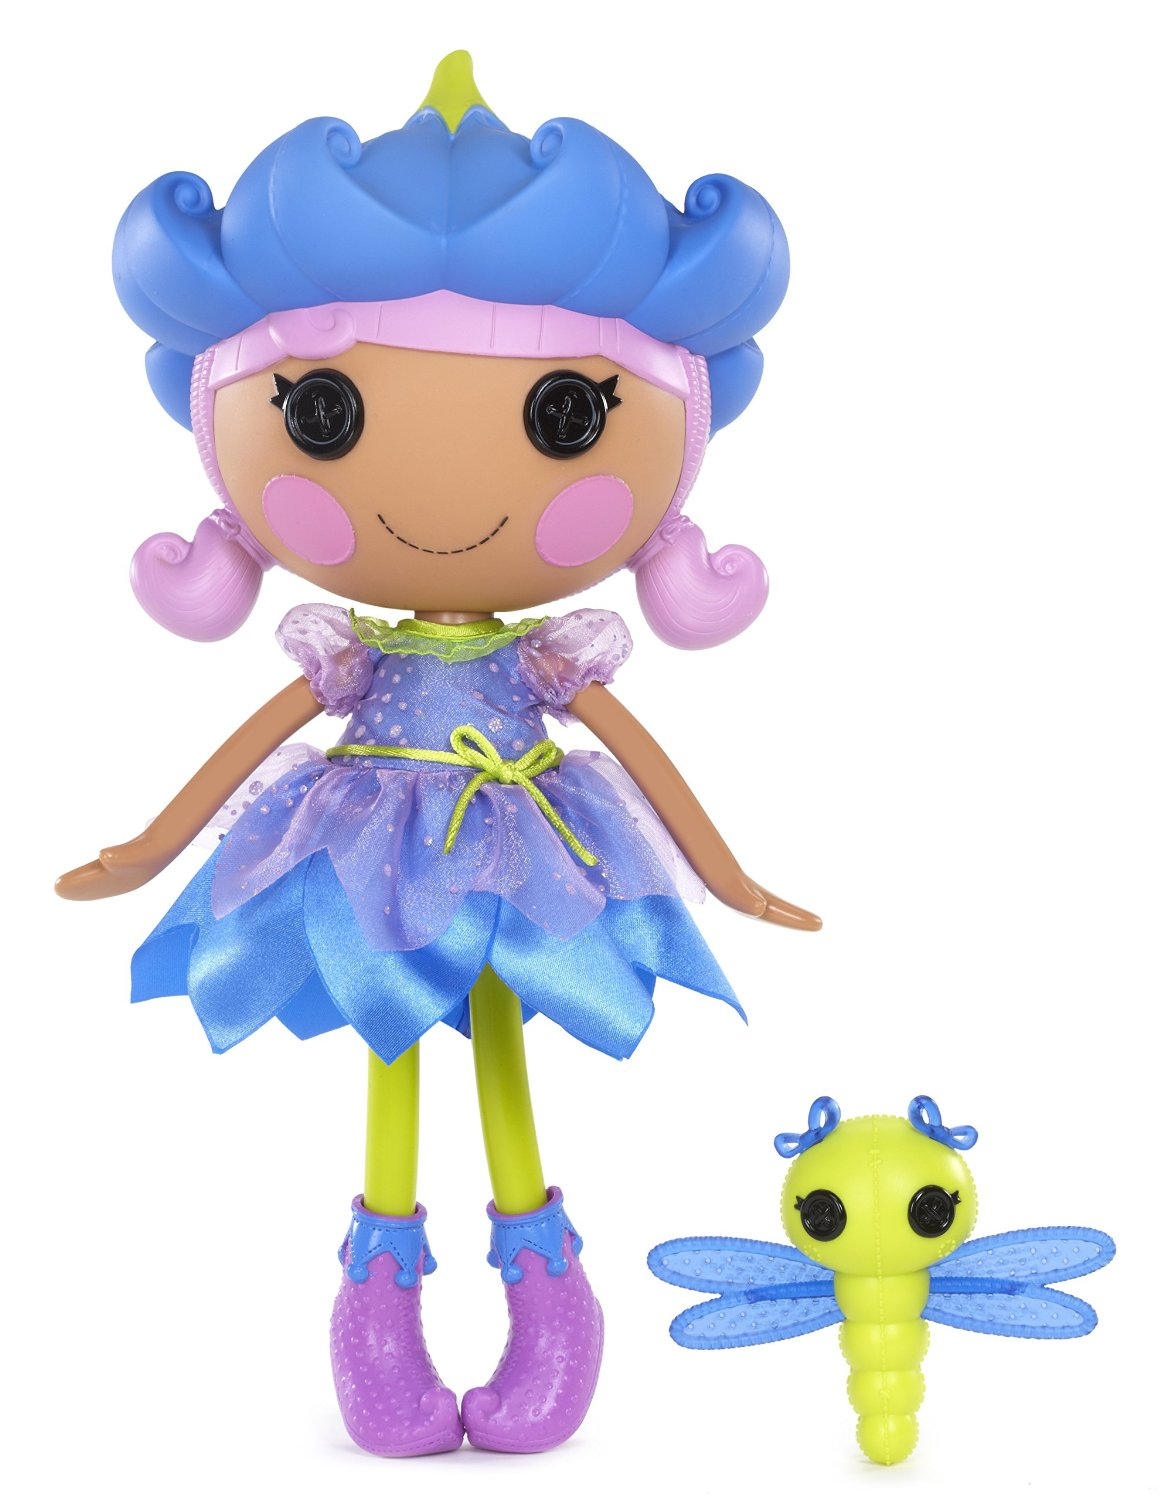 Lalaloopsy Toy Food : Bluebell dewdrop lalaloopsy land wiki fandom powered